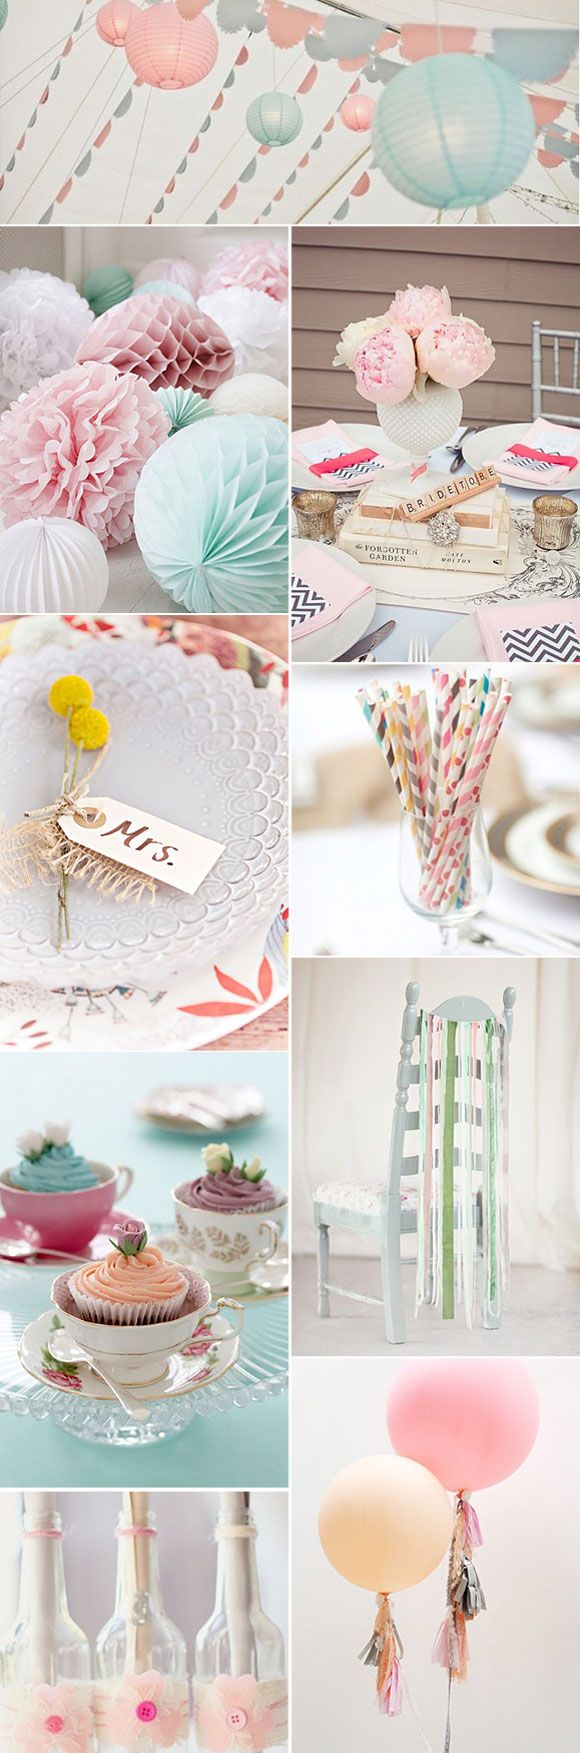 wedding-ceremony-day-in-spring-unique-party-theme-inspiration-ideas ...